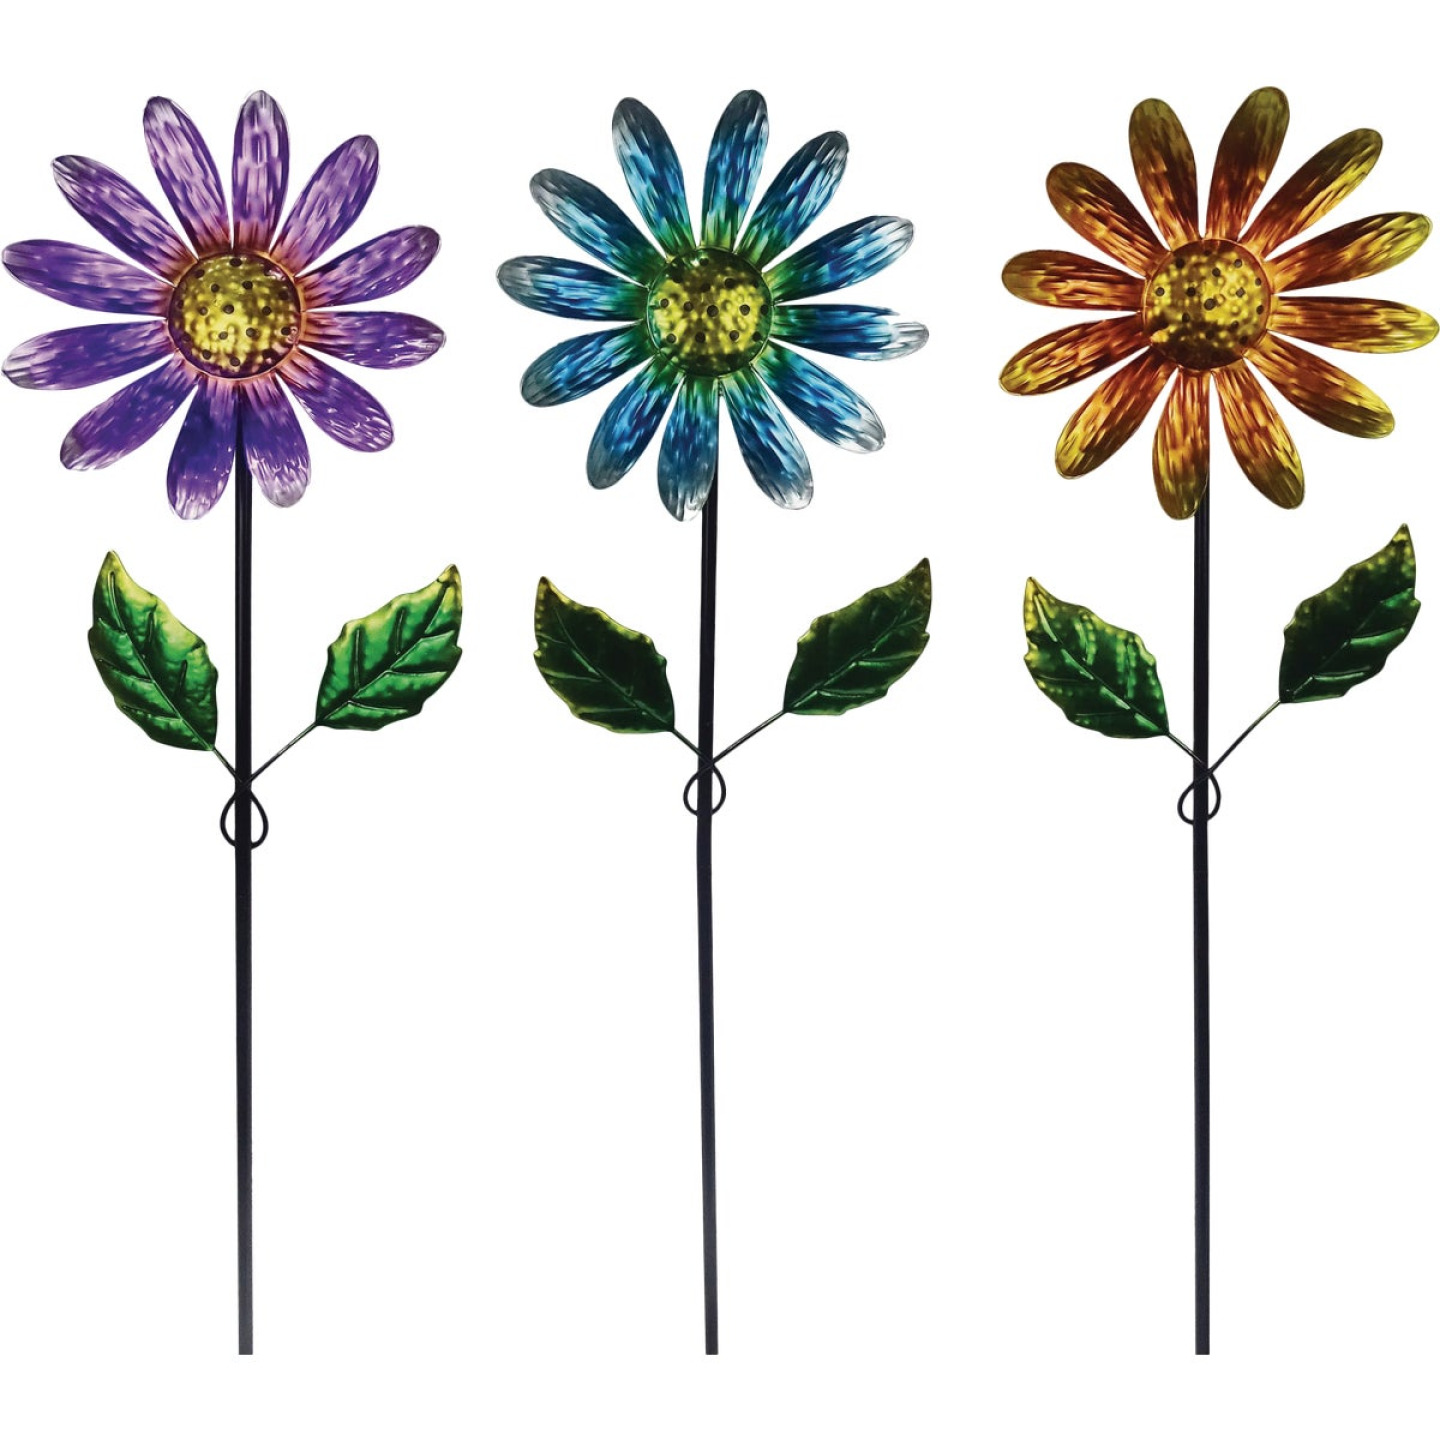 Alpine 32 In. Metal Daisy Garden Stake Lawn Ornament Image 1